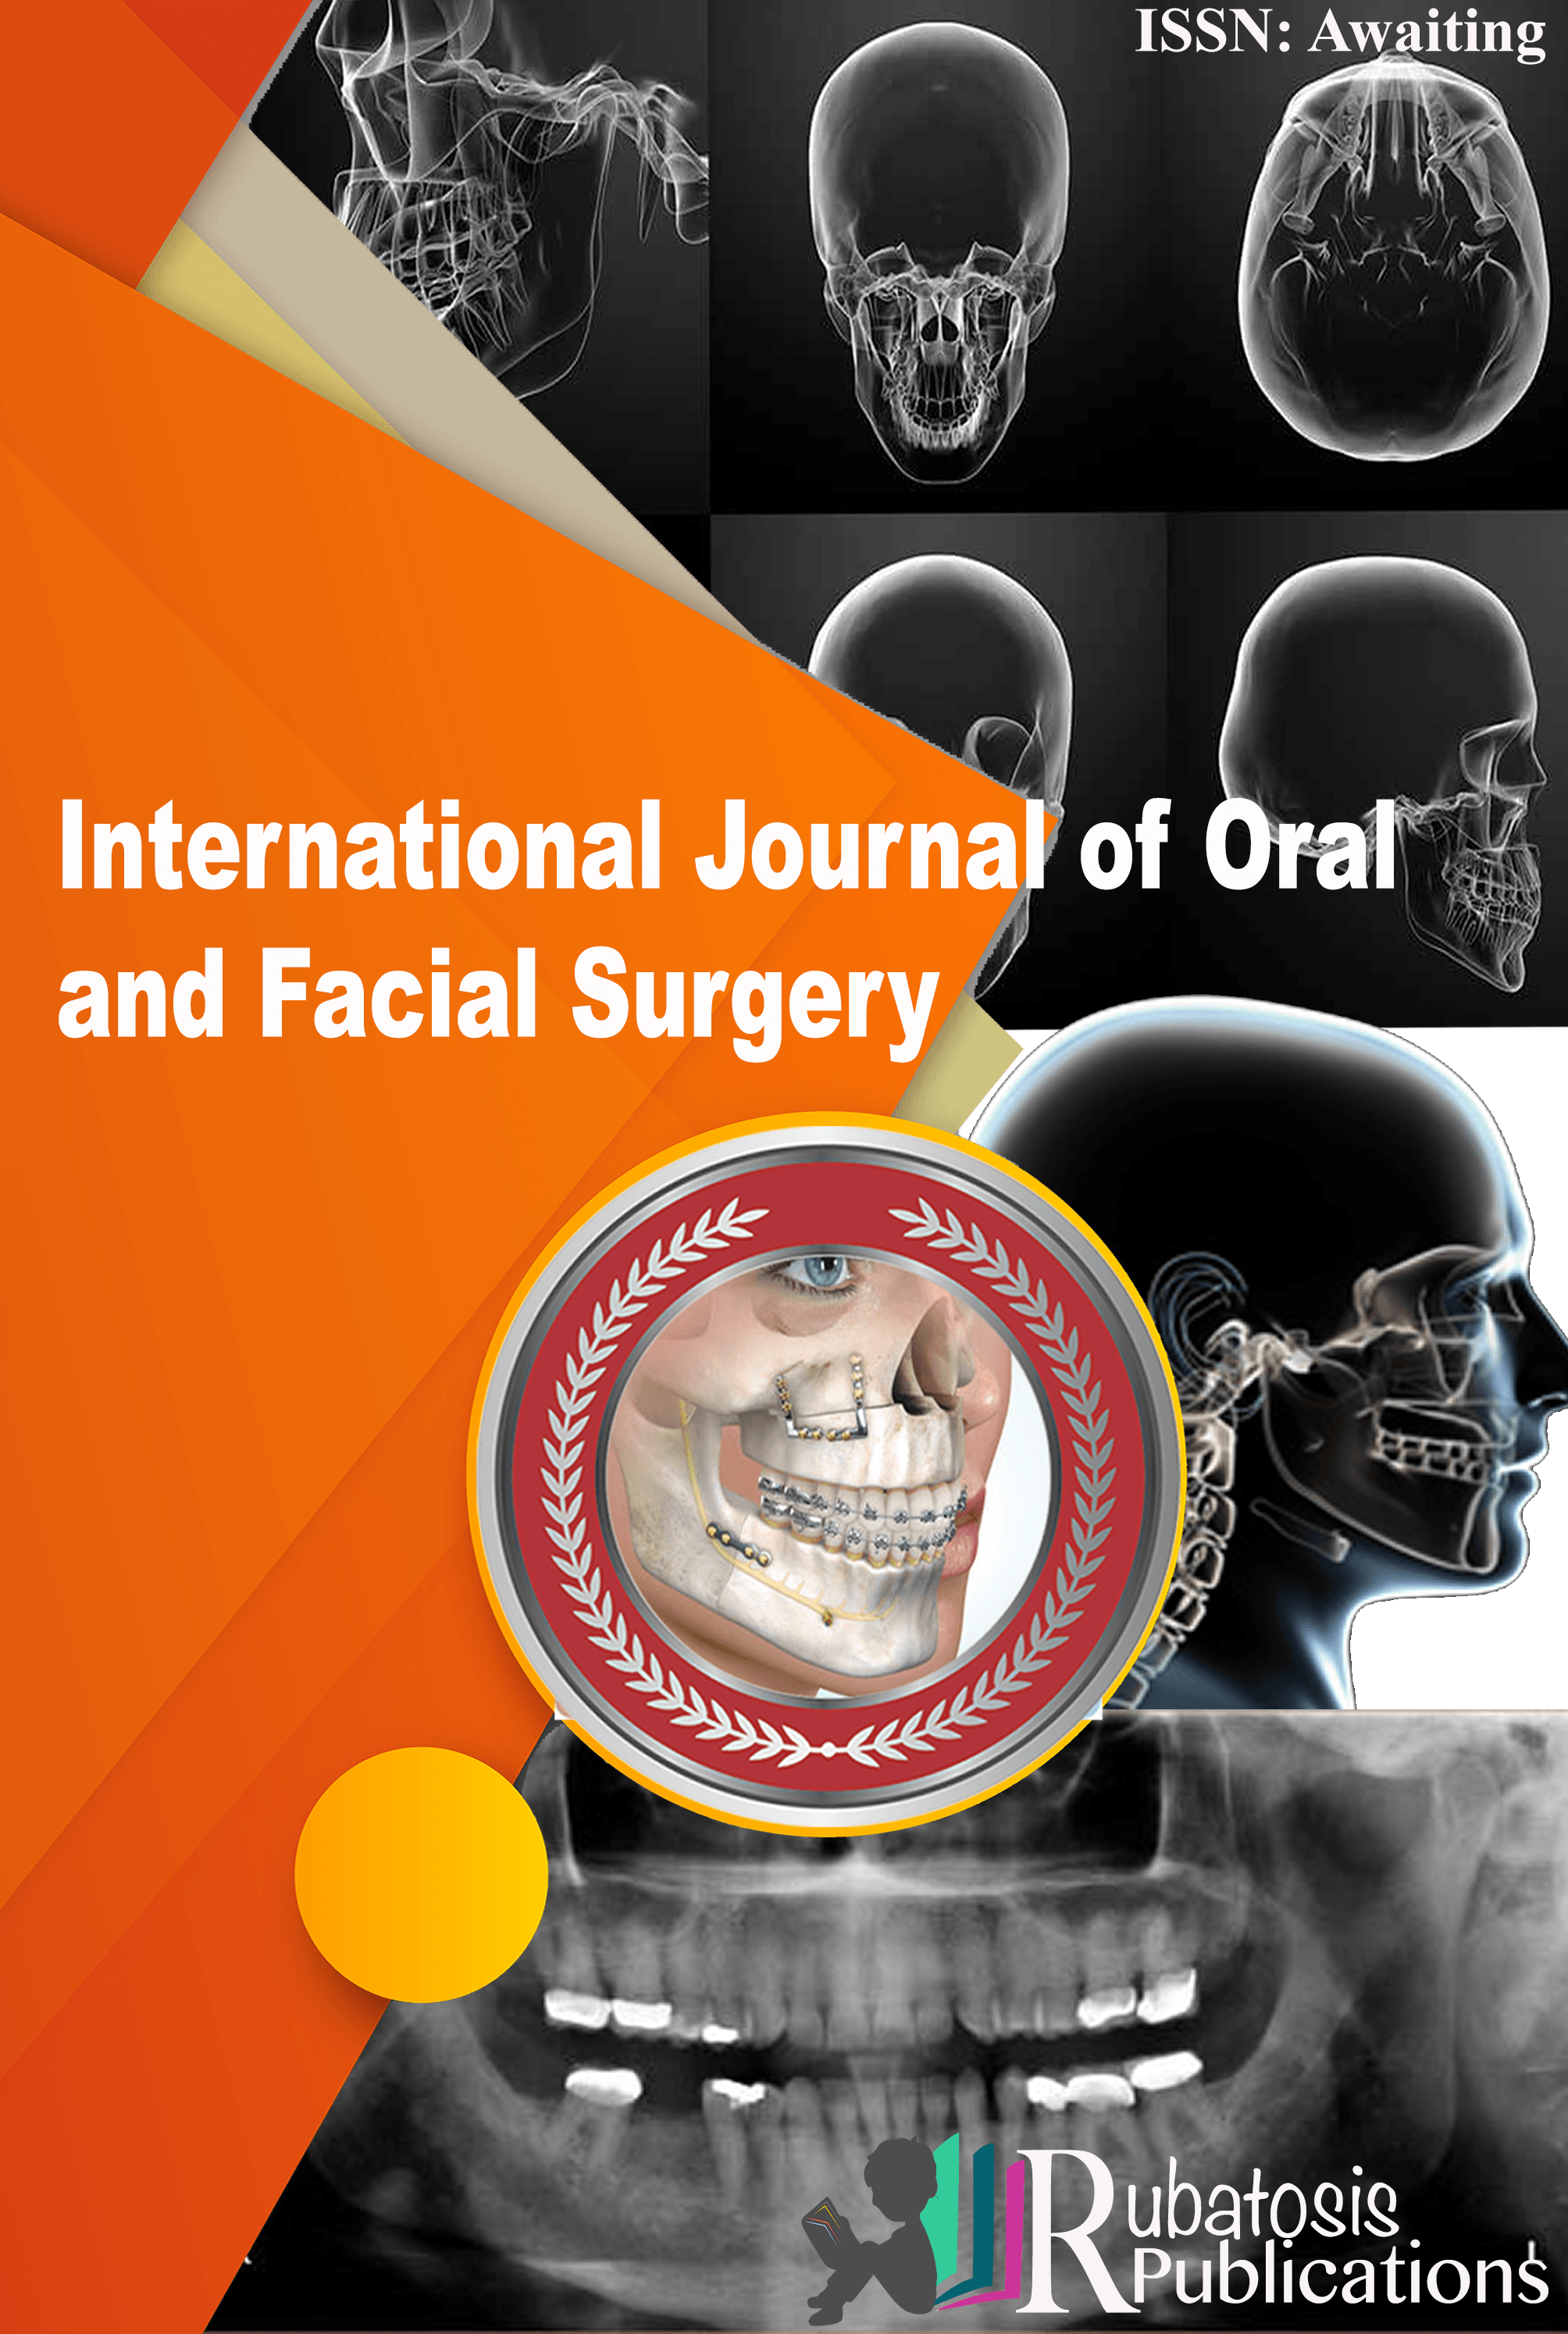 International Journal of Oral and Facial Surgery